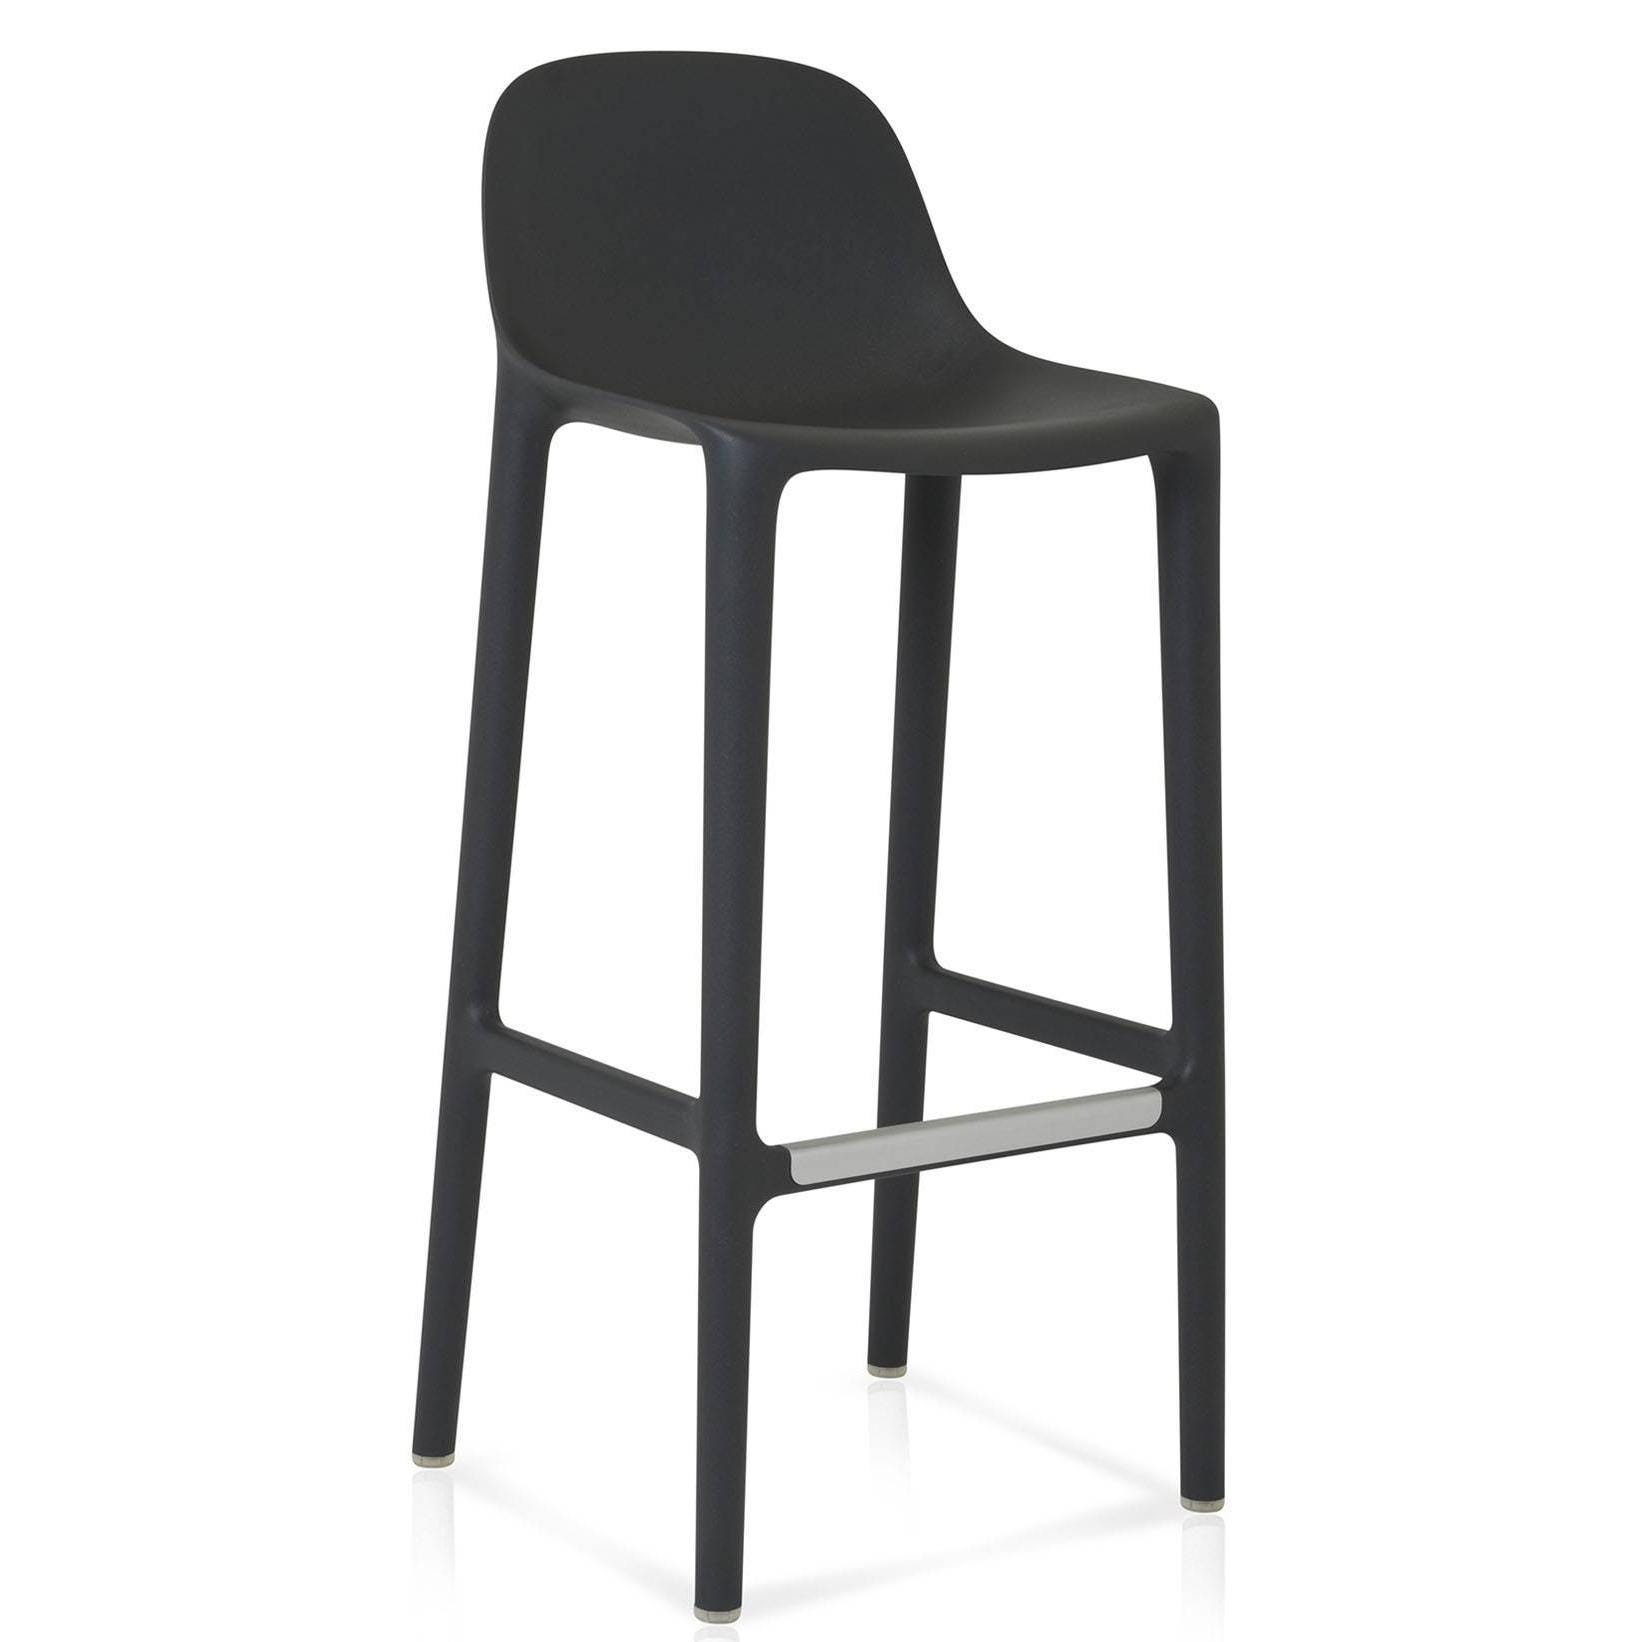 Emeco Broom Barstool Gr Shop Canada